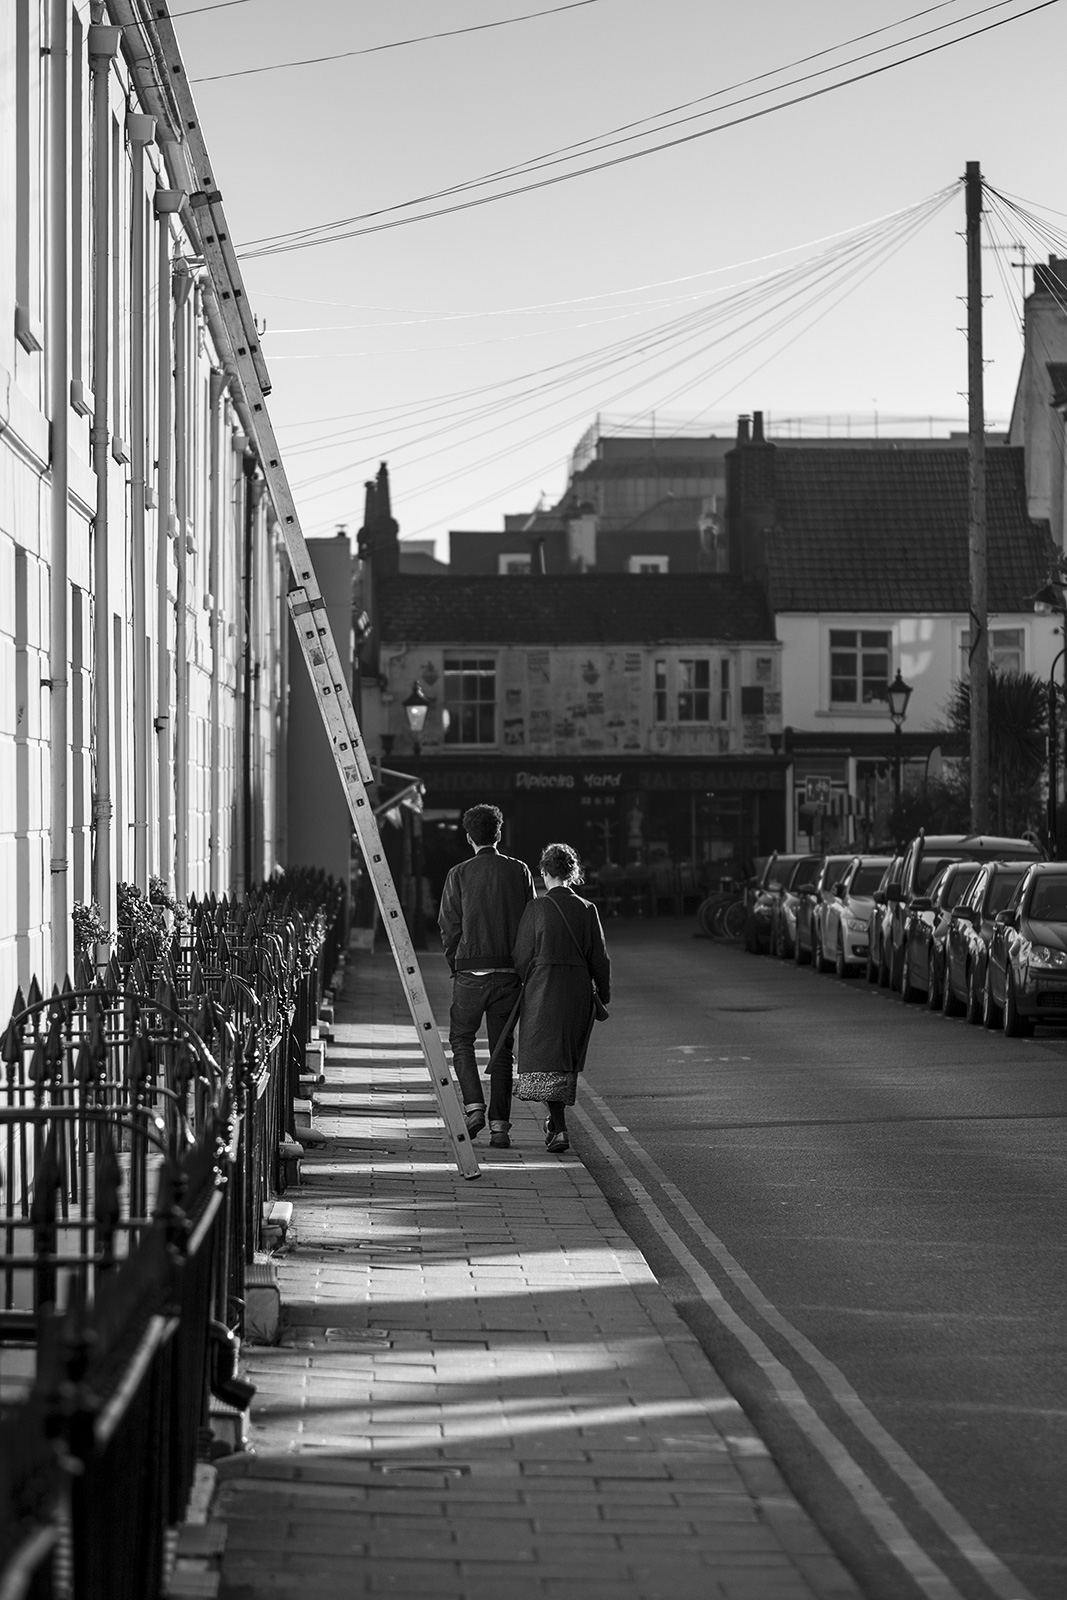 Young couple with linked arms walking away beside ladder down victorian town street, Kensington Place Brighton UK black and white documentary street photography portrait ©P. Maton 2019 eyeteeth.net